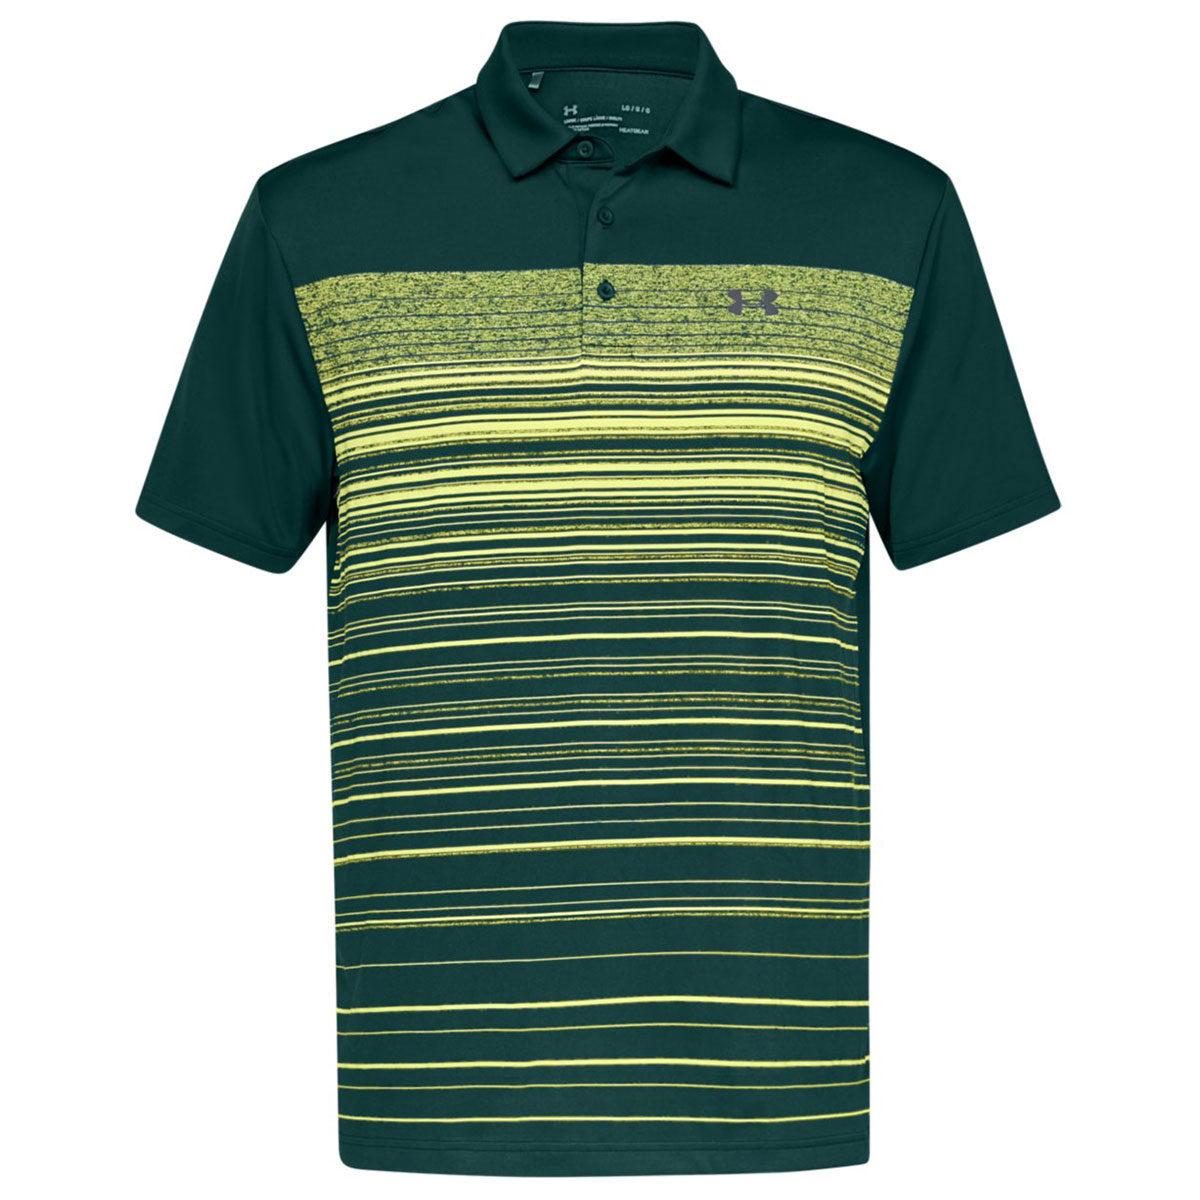 Under-Armour-Mens-2019-Playoff-Polo-2-0-Breathable-Light-Stretch-Polo-Shirt thumbnail 33